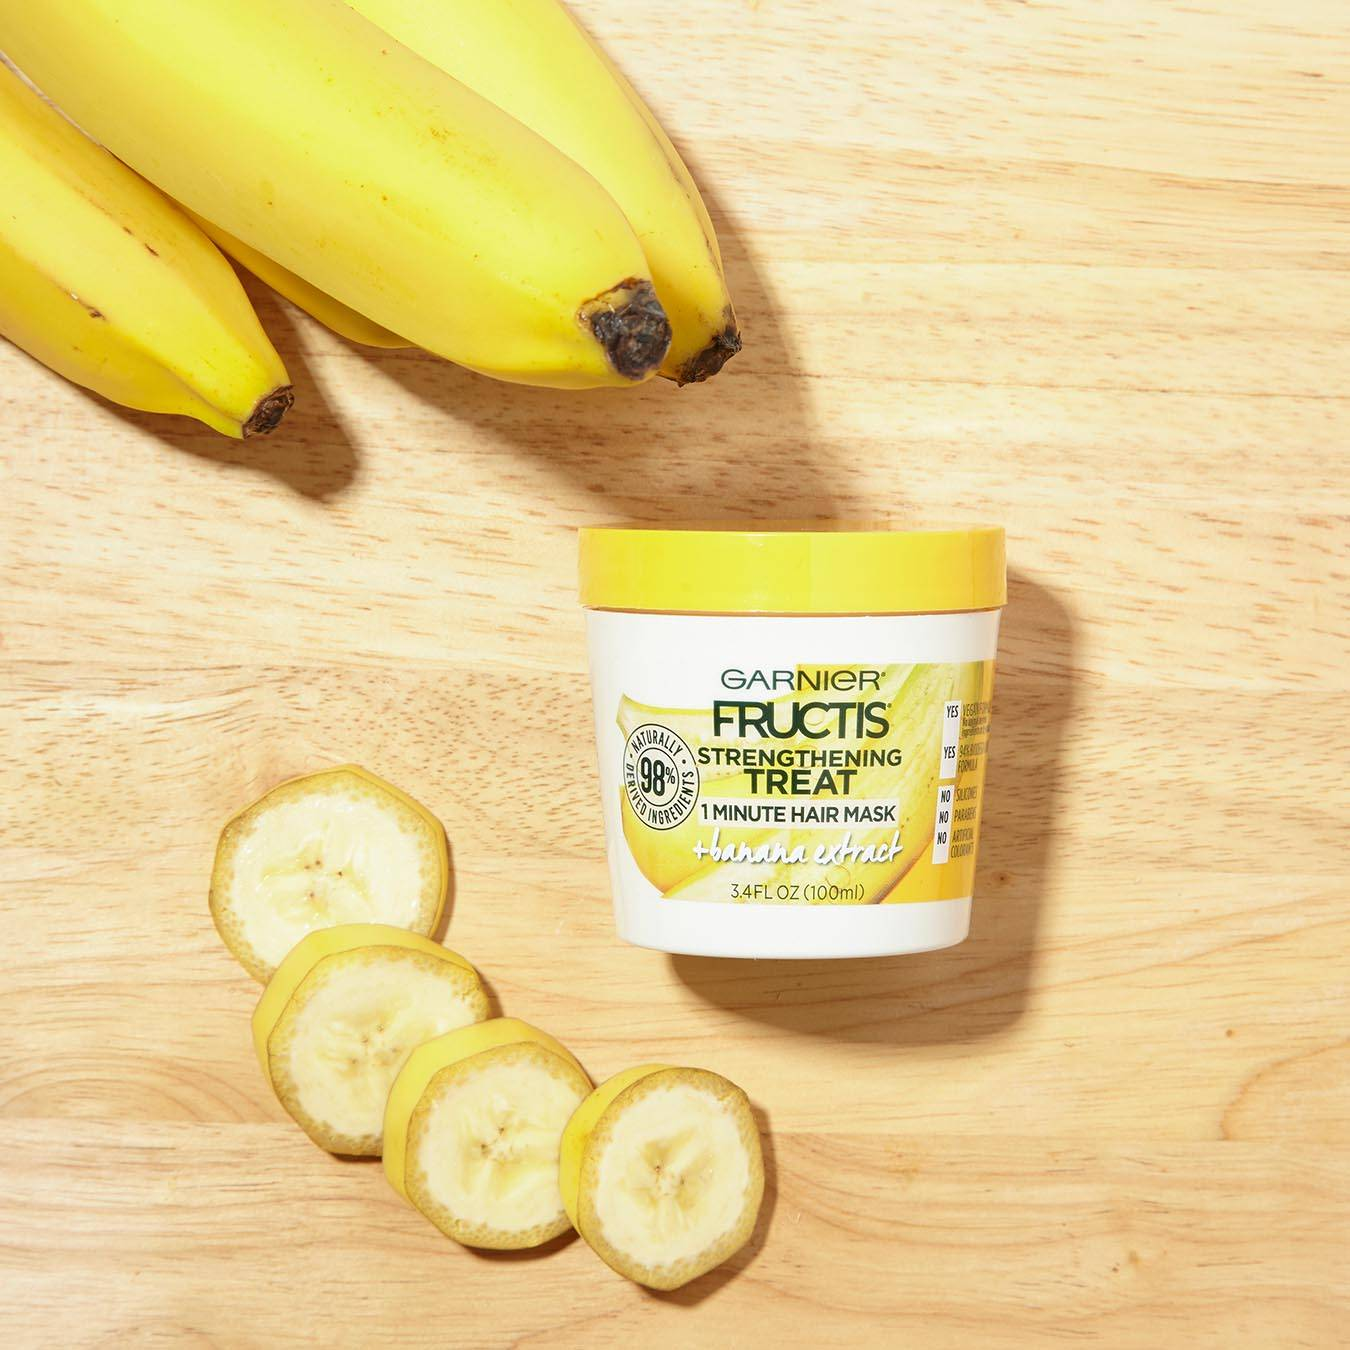 Garnier Fructis Strengthening Treat 1 Minute Hair Mask with Banana Extract on a wooden background next to a bunch of bananas and banana slices.